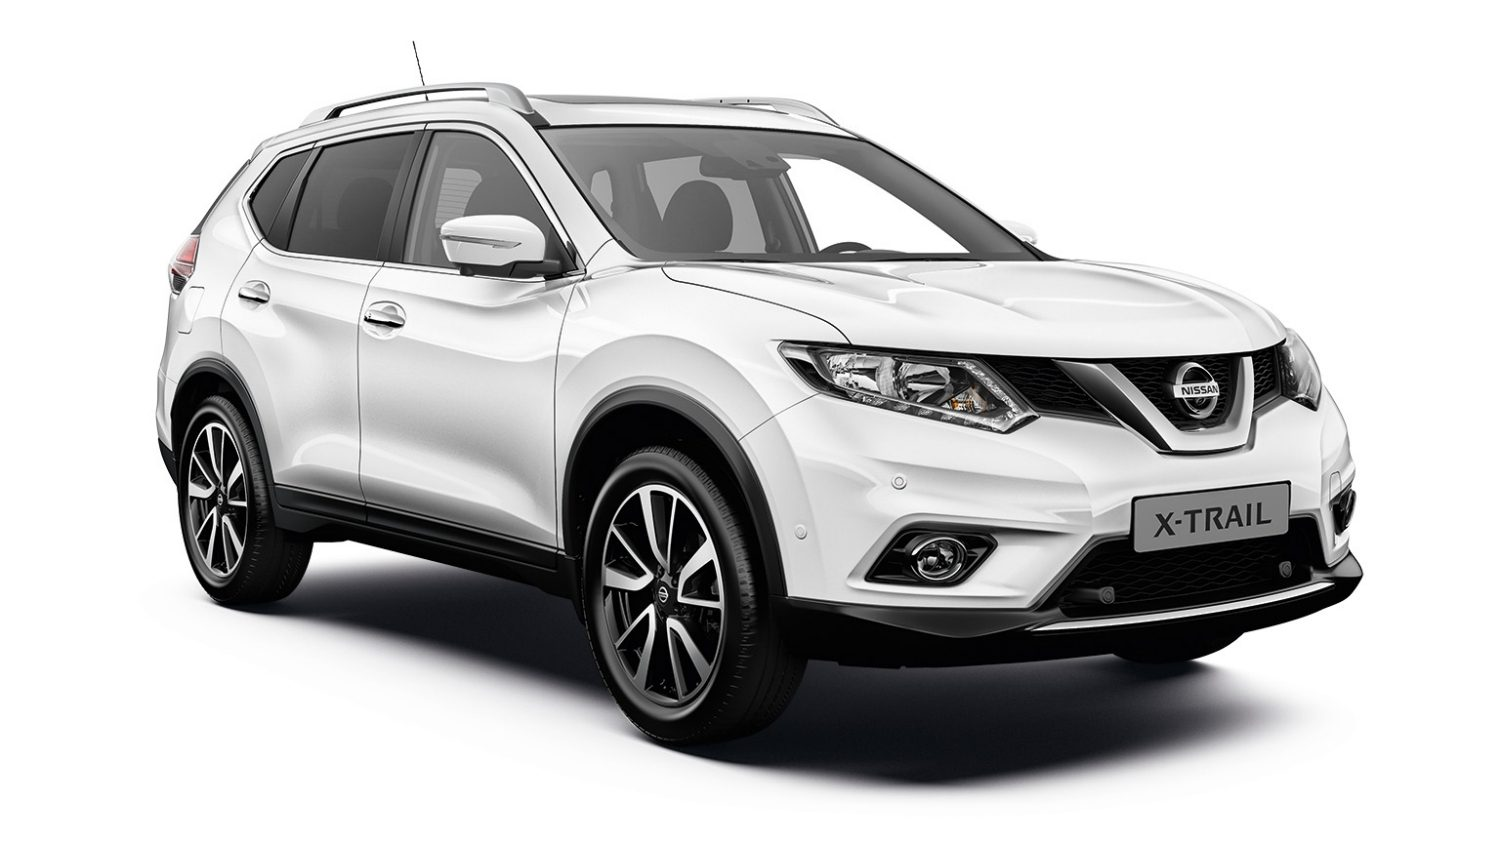 Nissan X-Trail Connect Edition - 3/4 front view